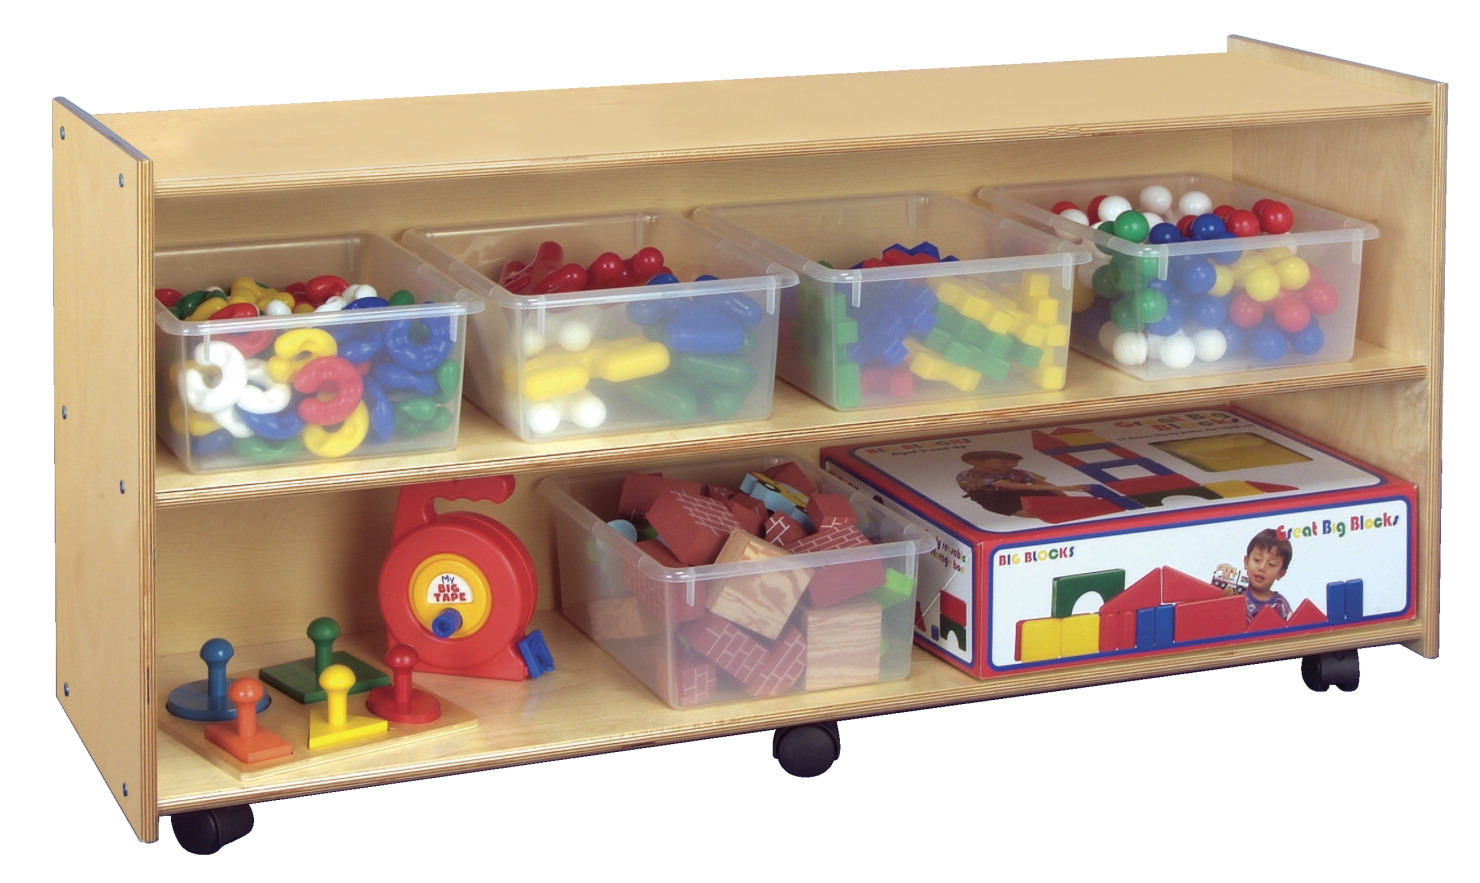 Childcraft Mobile Open Shelving Unit, 2 Shelves, 24 Inches